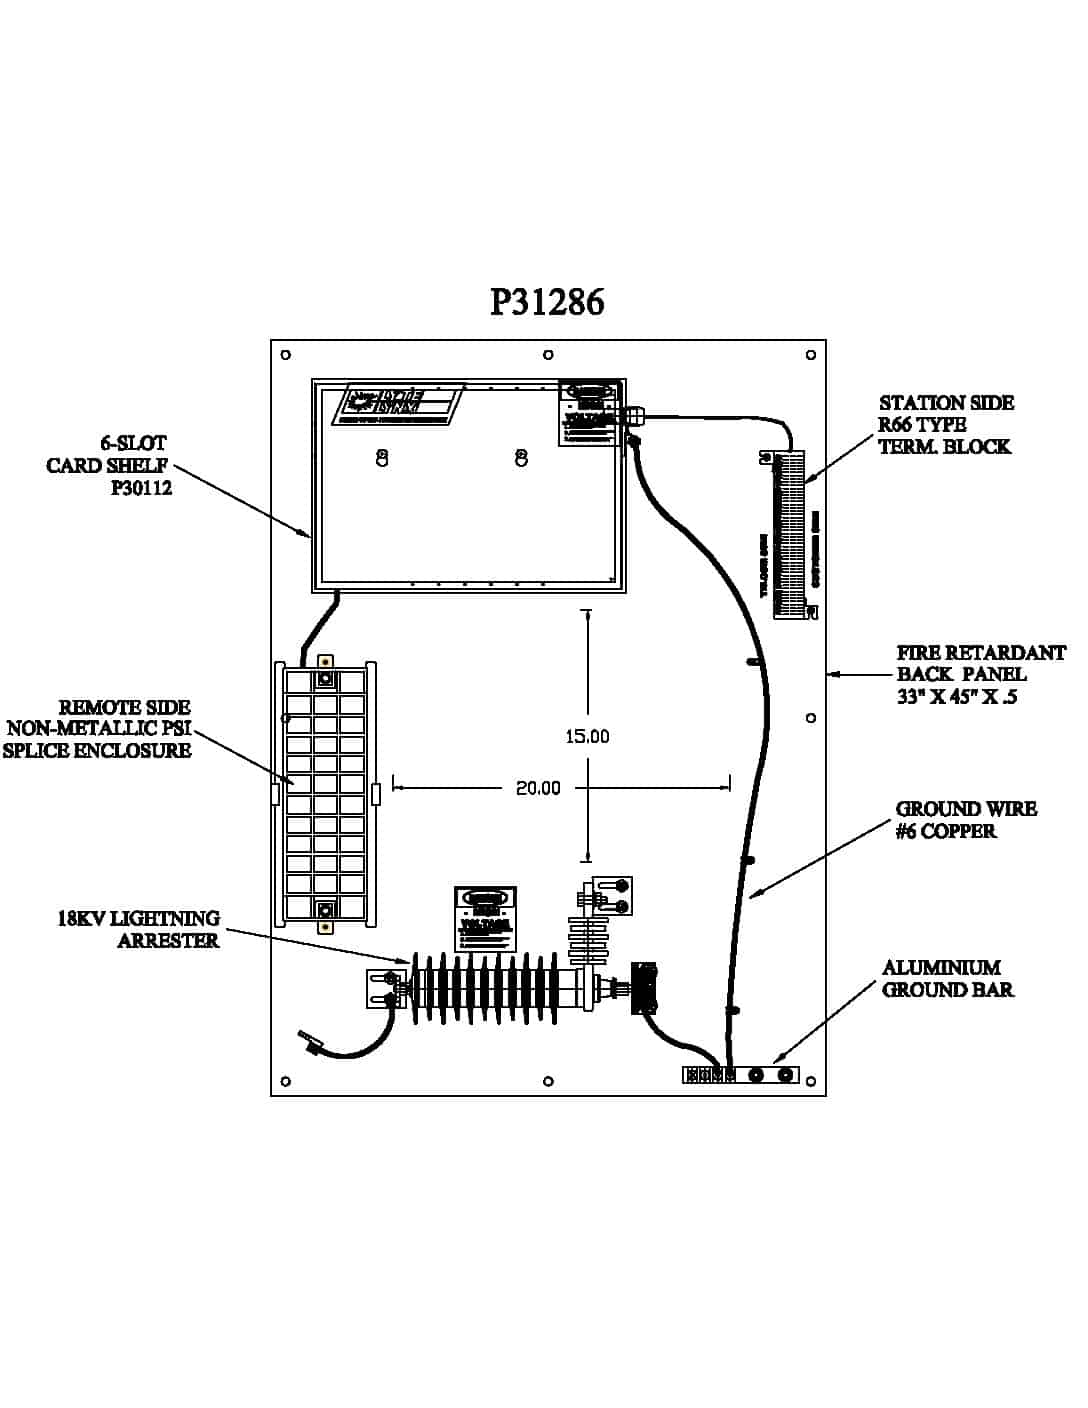 P31286 Turnkey Protection Packages - 6 slot PDF thumbnail